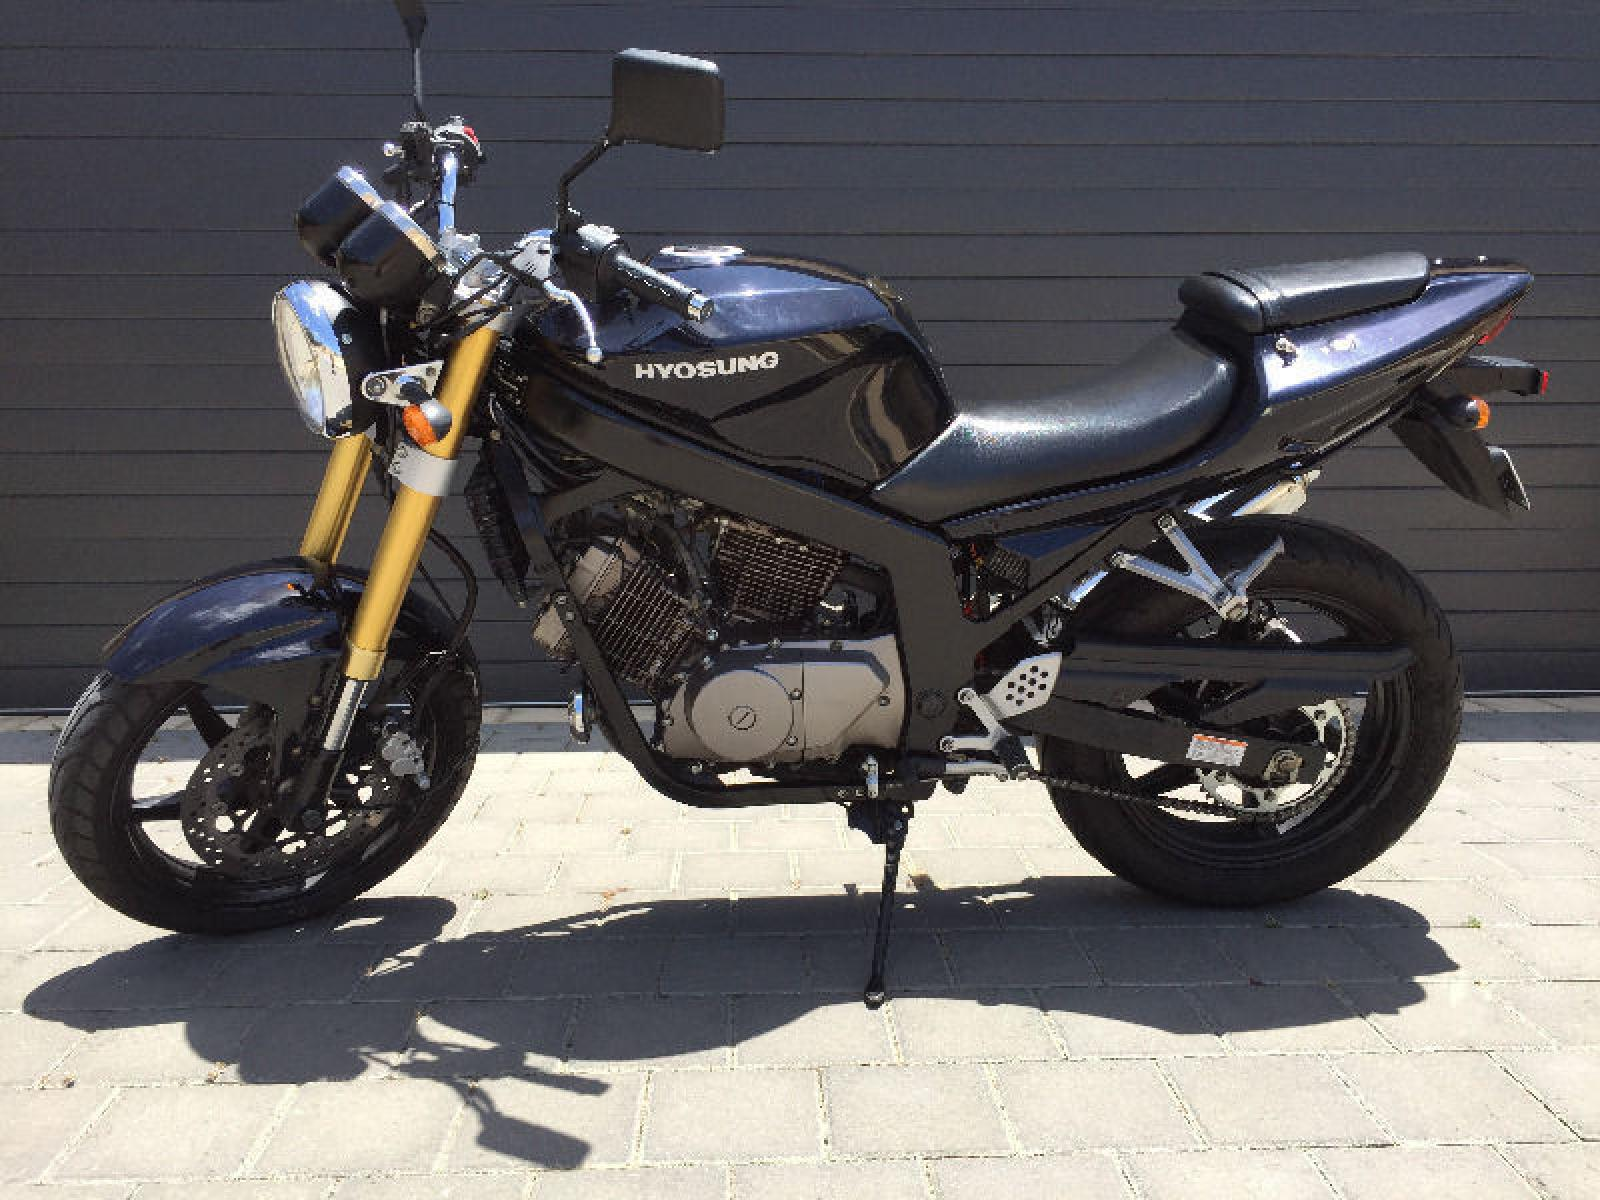 2007 Hyosung GT250 Naked - GT250 Comet specifications and